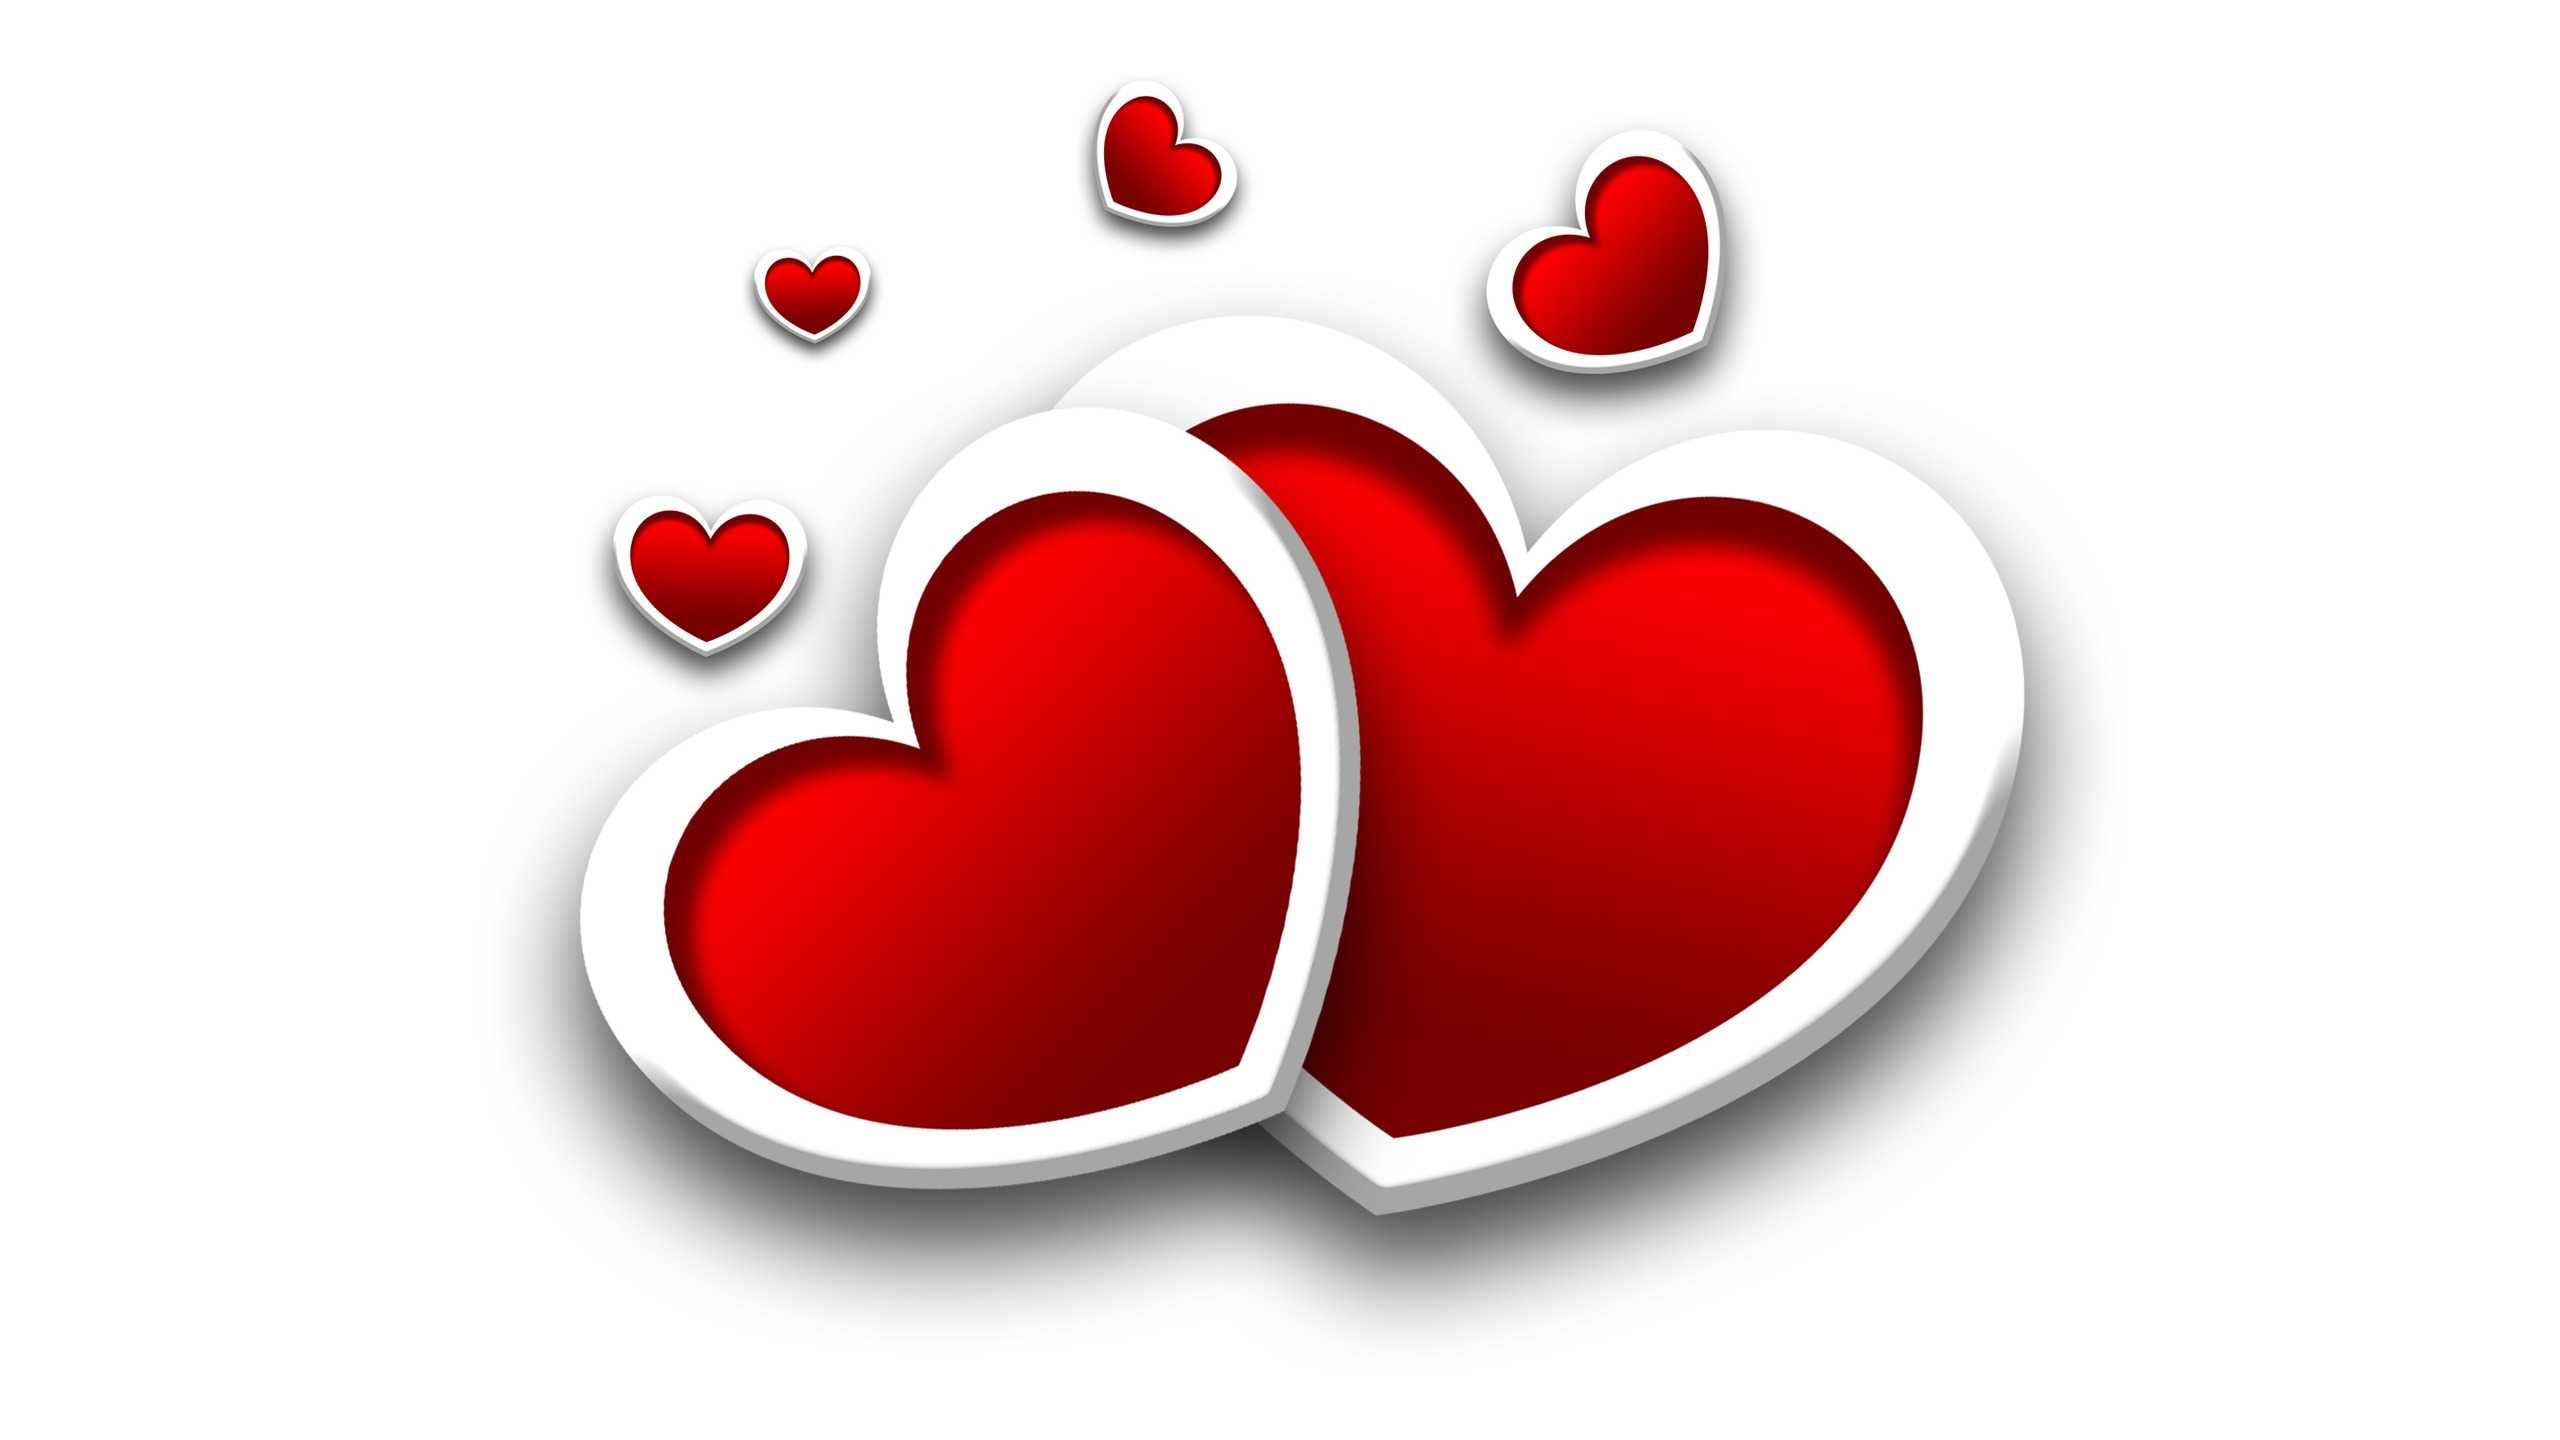 Cute Heart Desktop Wallpapers Top Free Cute Heart Desktop